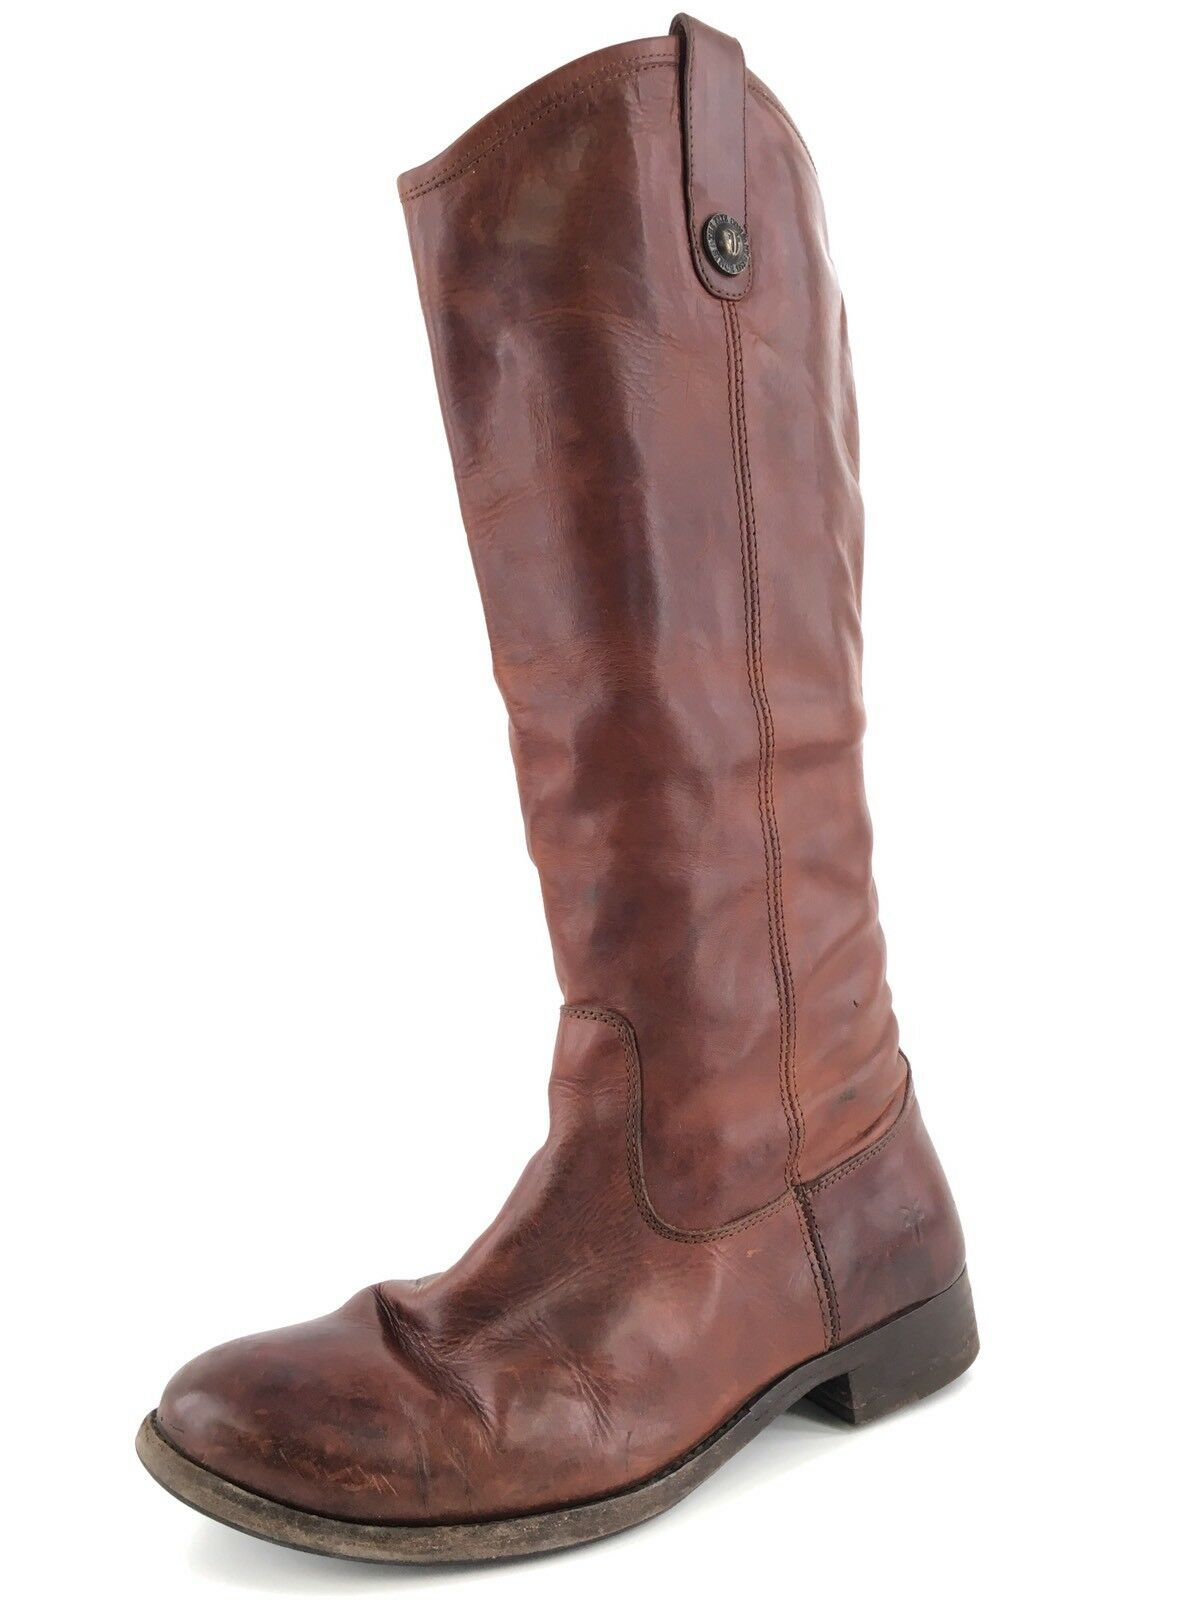 Frye Melissa Button Cognac Leather Knee High Riding Boots Women's Size 7 M